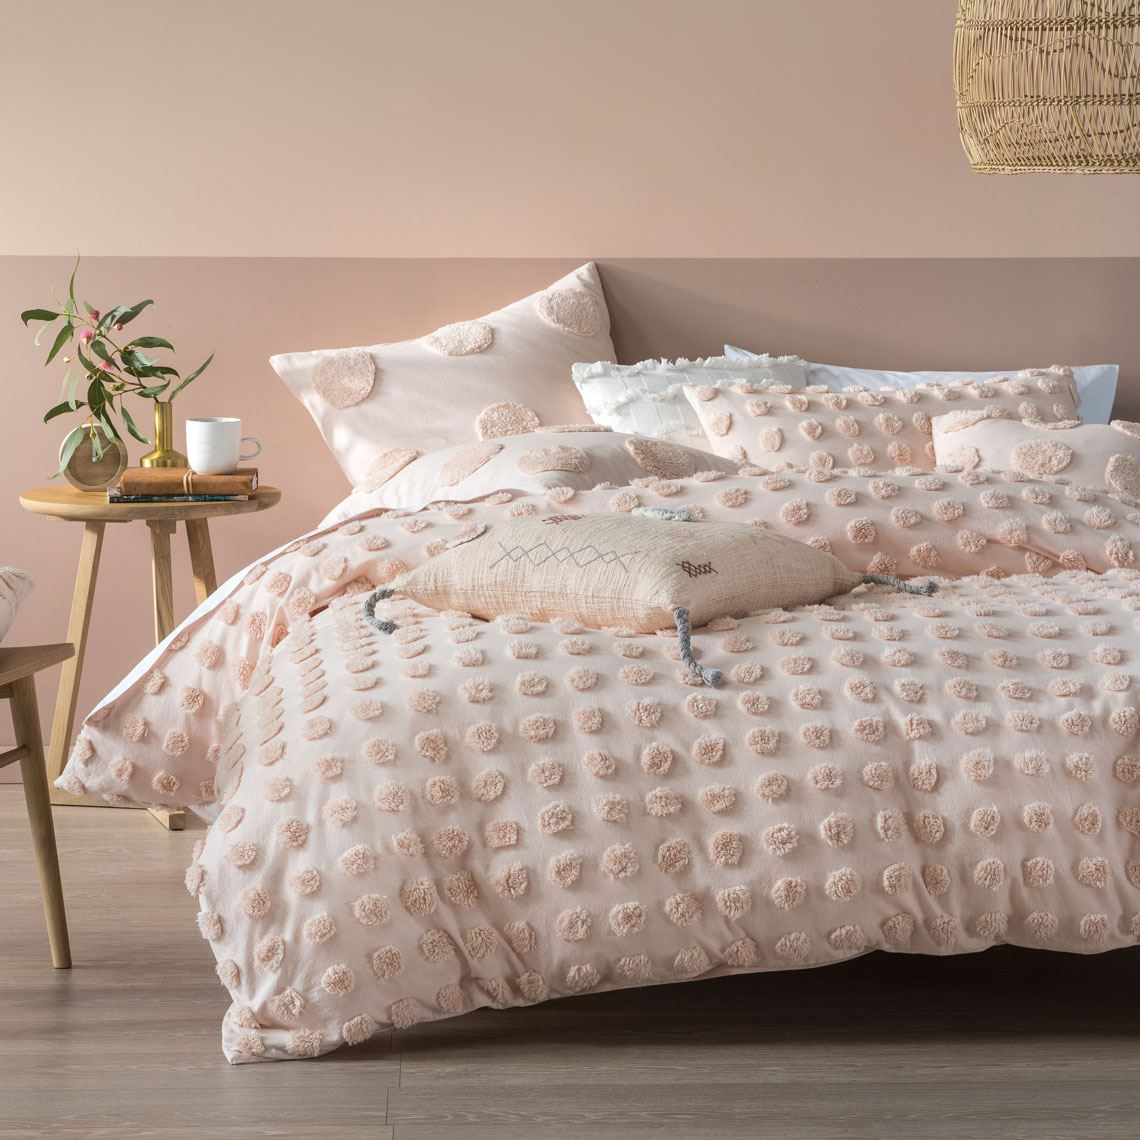 Haze Quilt Cover Set Queen Size W 210cm x D 1cm x H 210cm in Peach Freedom by Freedom, a Quilts & Bedspreads for sale on Style Sourcebook